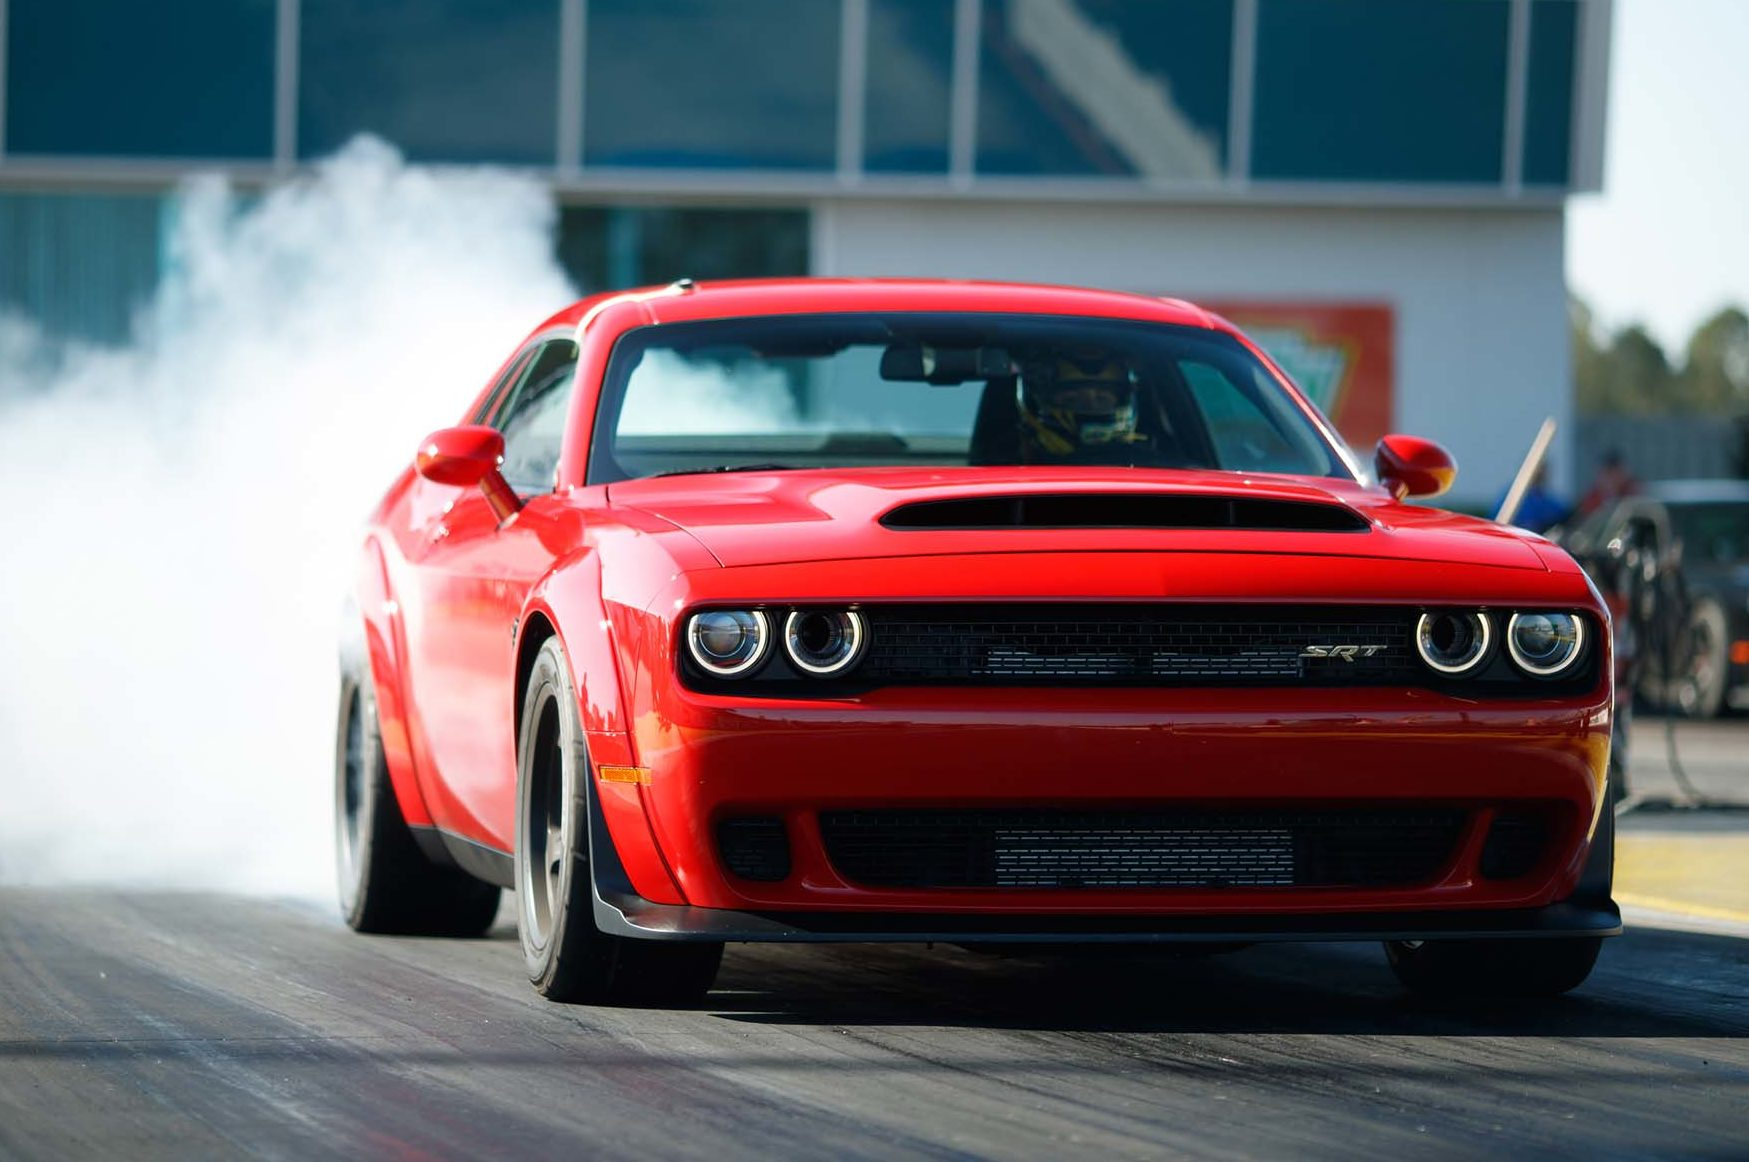 2018 Dodge Challenger >> 2018 Dodge Challenger Srt Demon Gets Its Own Insurance Provider